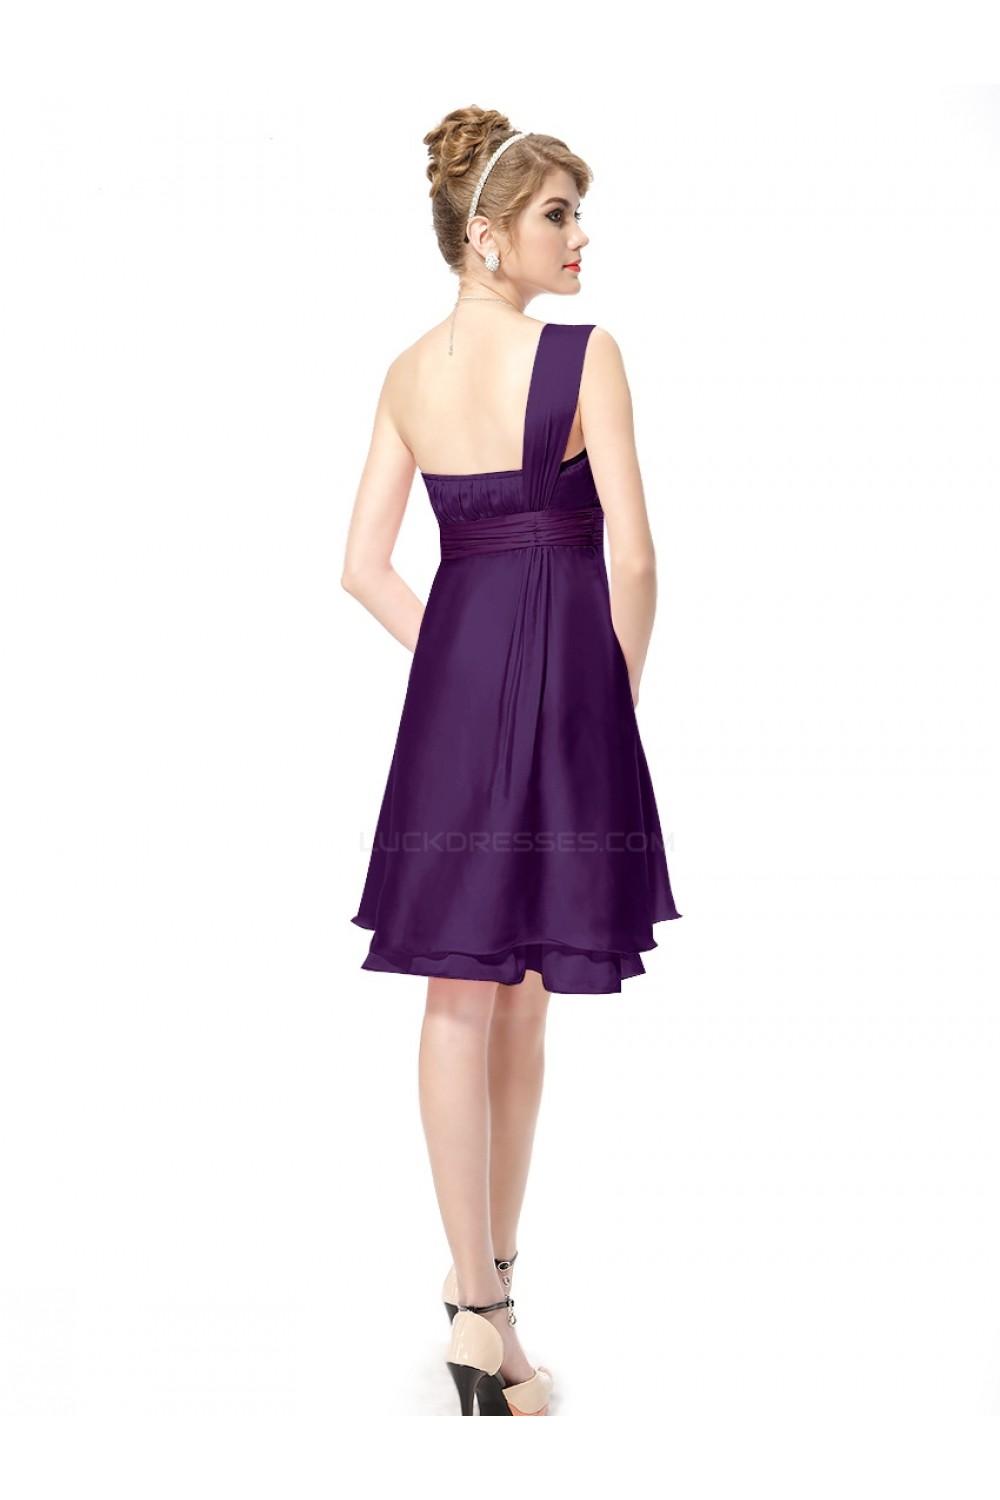 aline oneshoulder short purple bridesmaid dresses